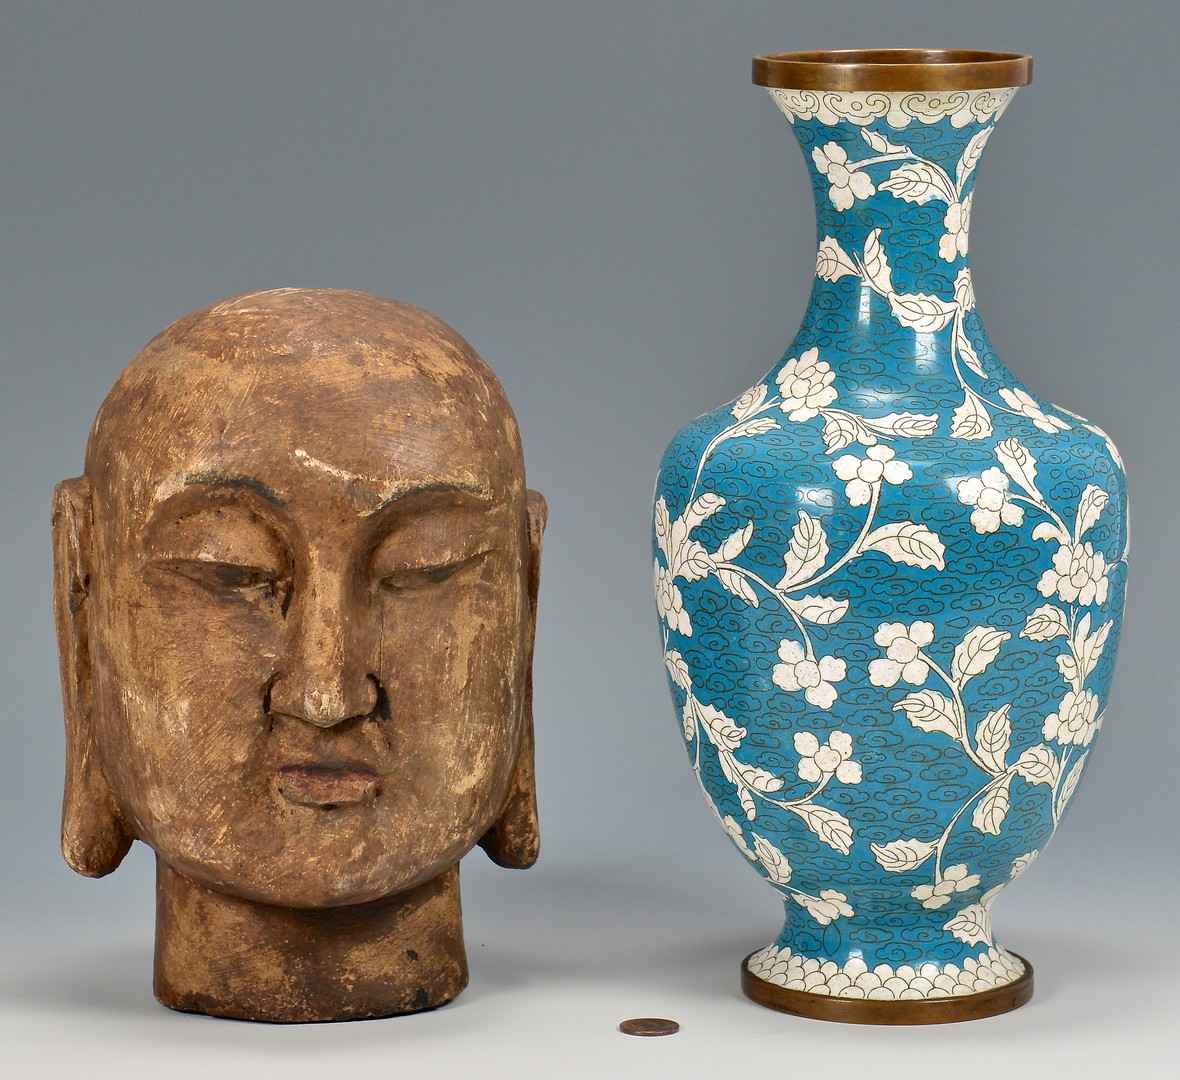 Lot 4010200: Carved Buddha Head, Cloisonne Vase